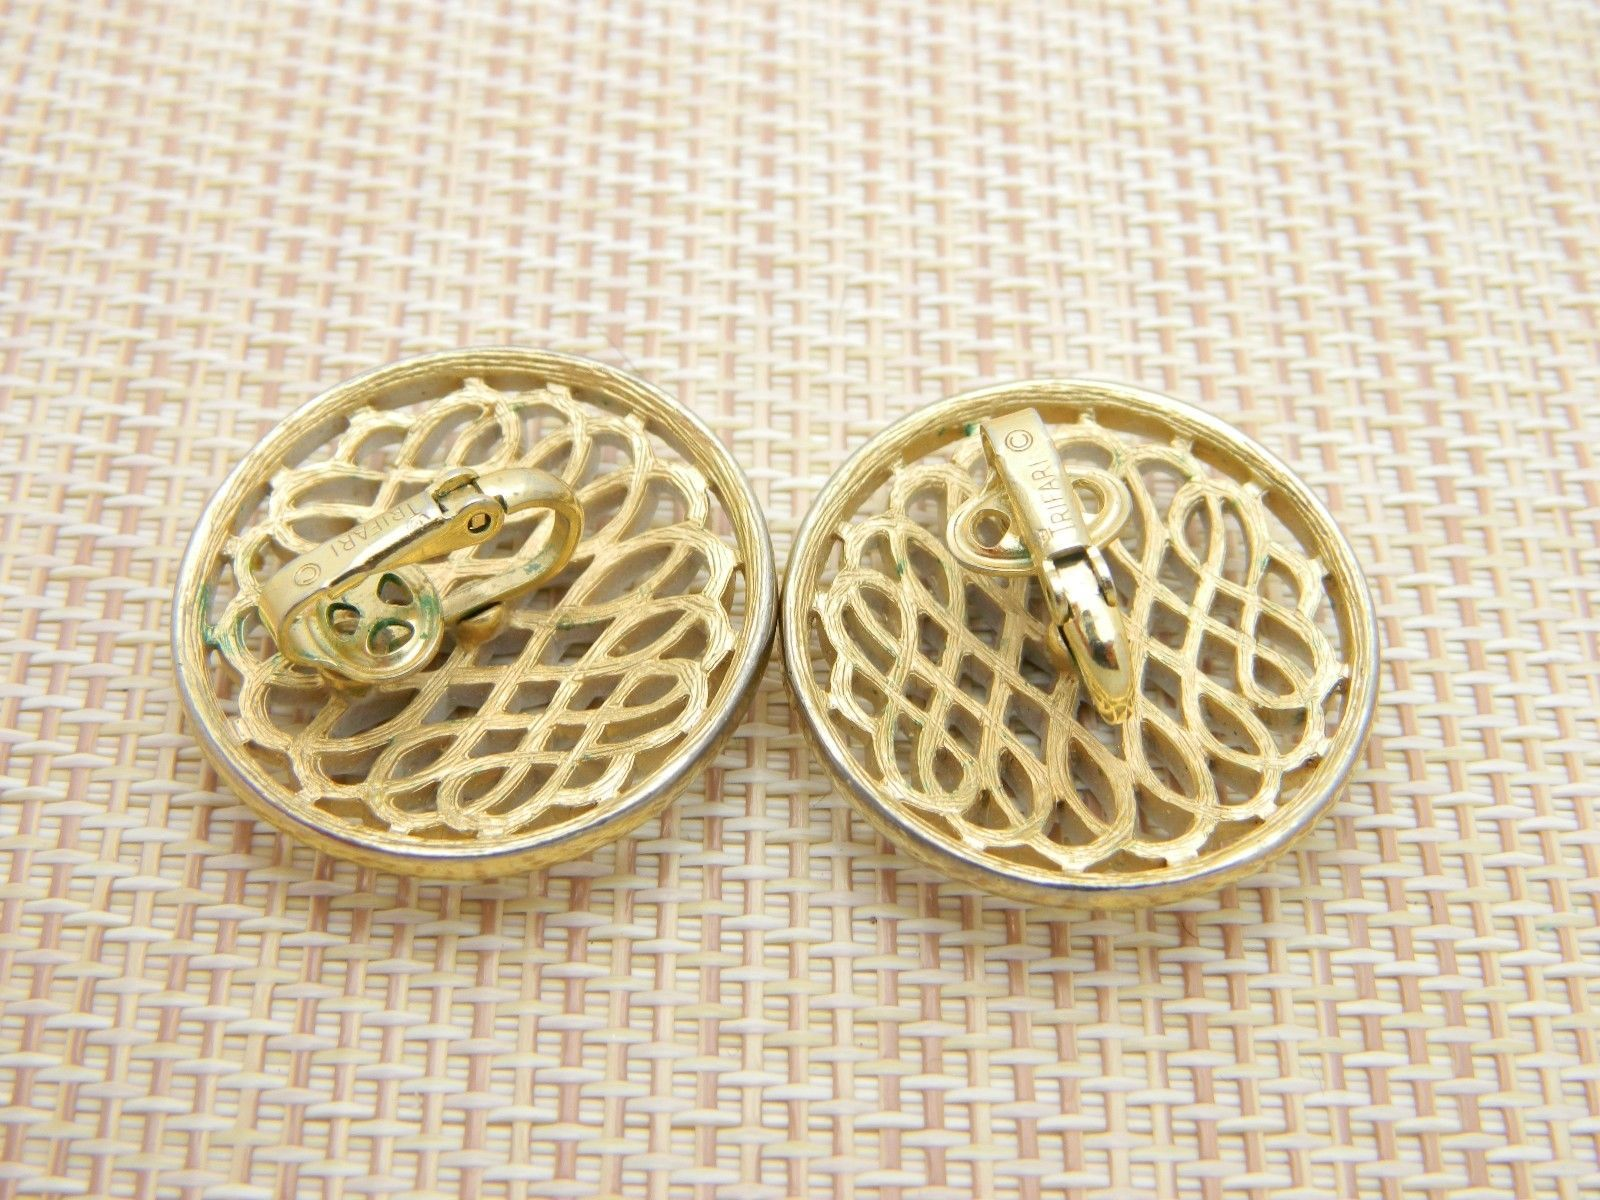 CROWN TRIFARI Gold Tone White Enamel Round Openwork Clip Earrings Vintage